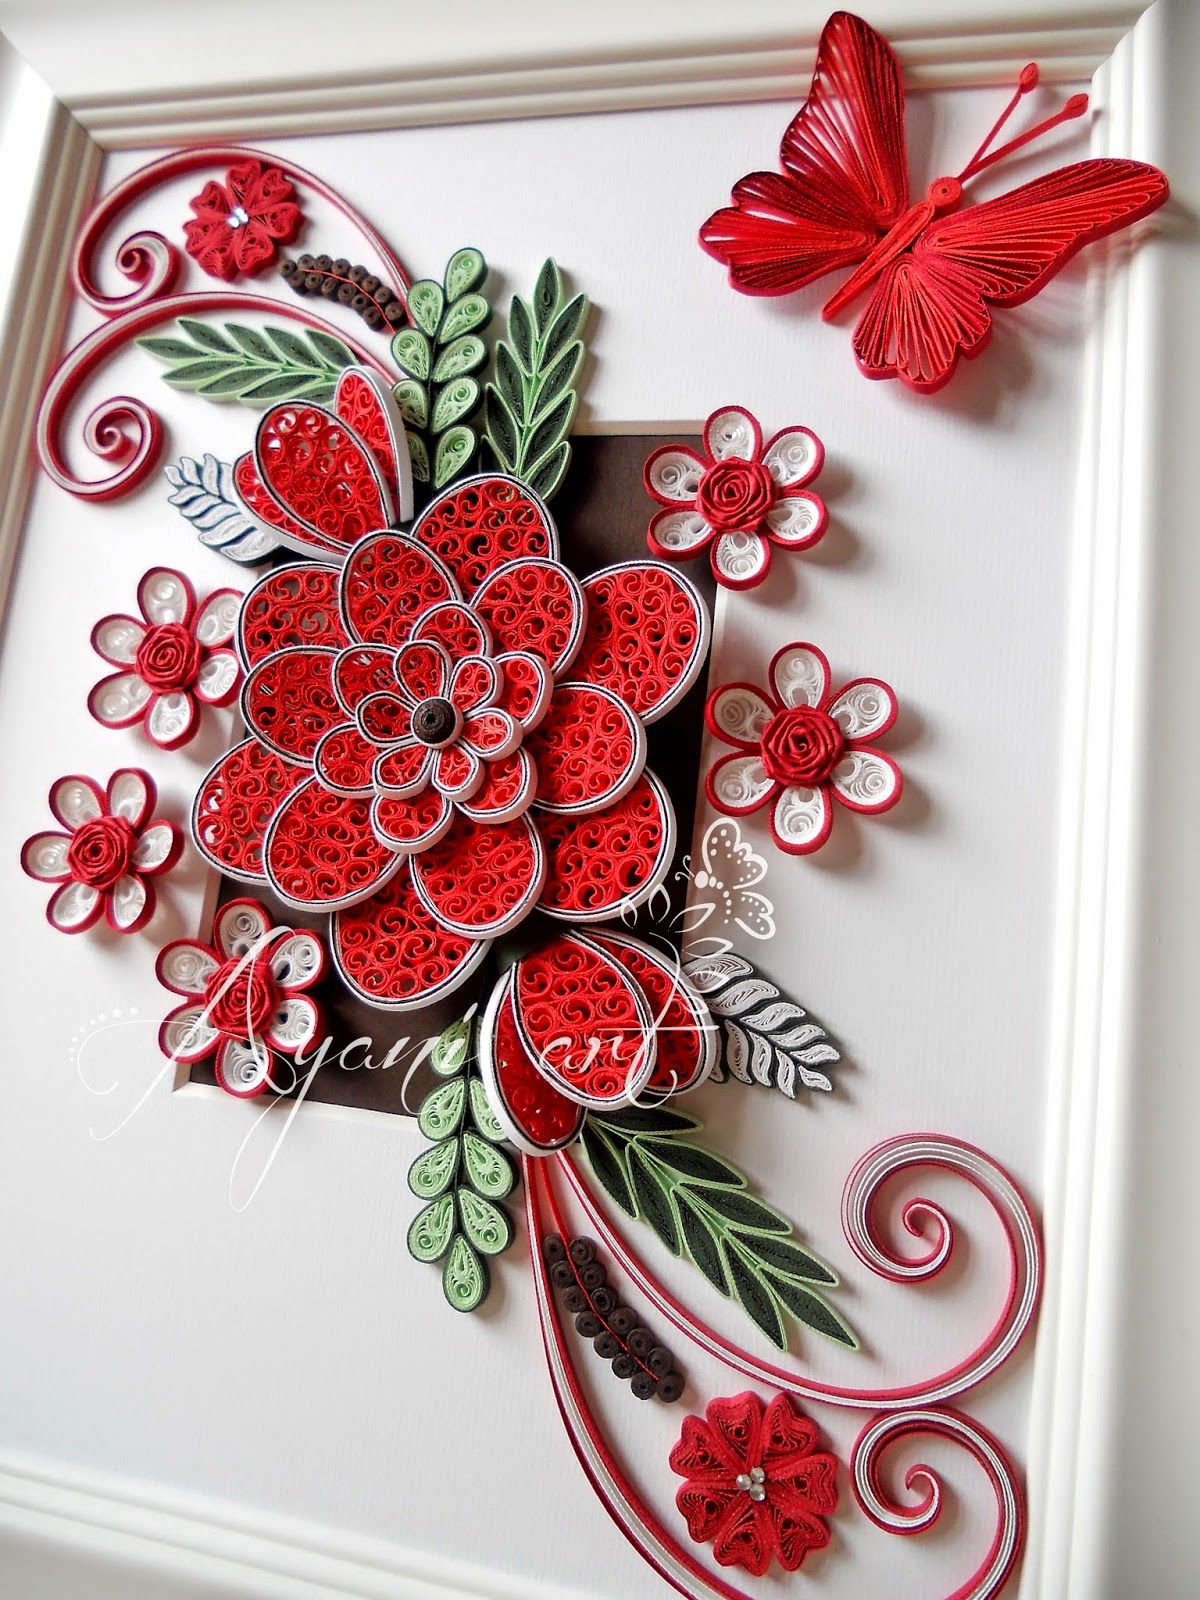 Ayani Art Quilled Pictures Quilled Cards Pinterest Quilling